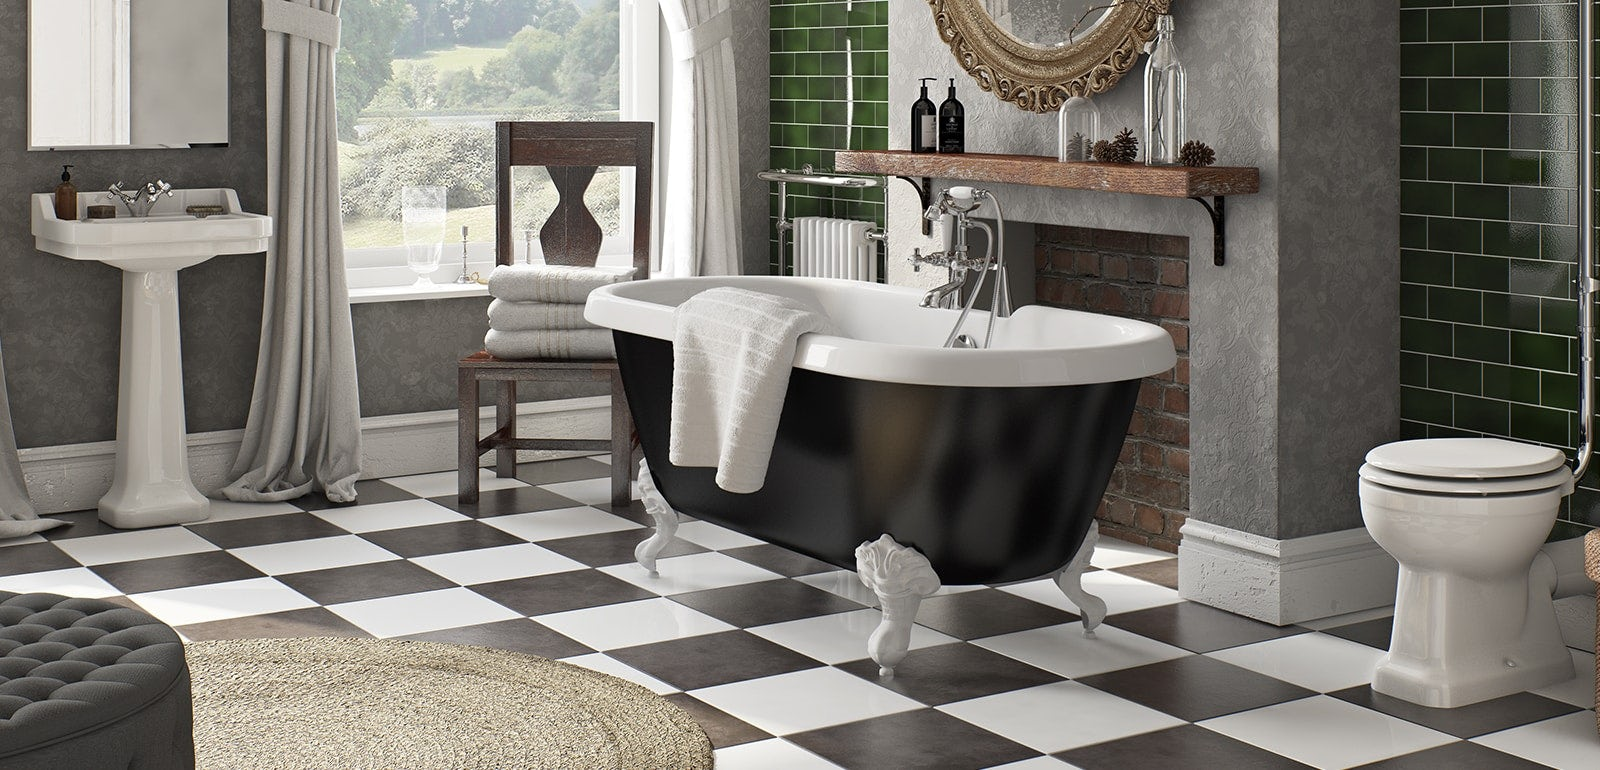 6 Fun Ideas For Bathroom Floors Victoriaplum Com